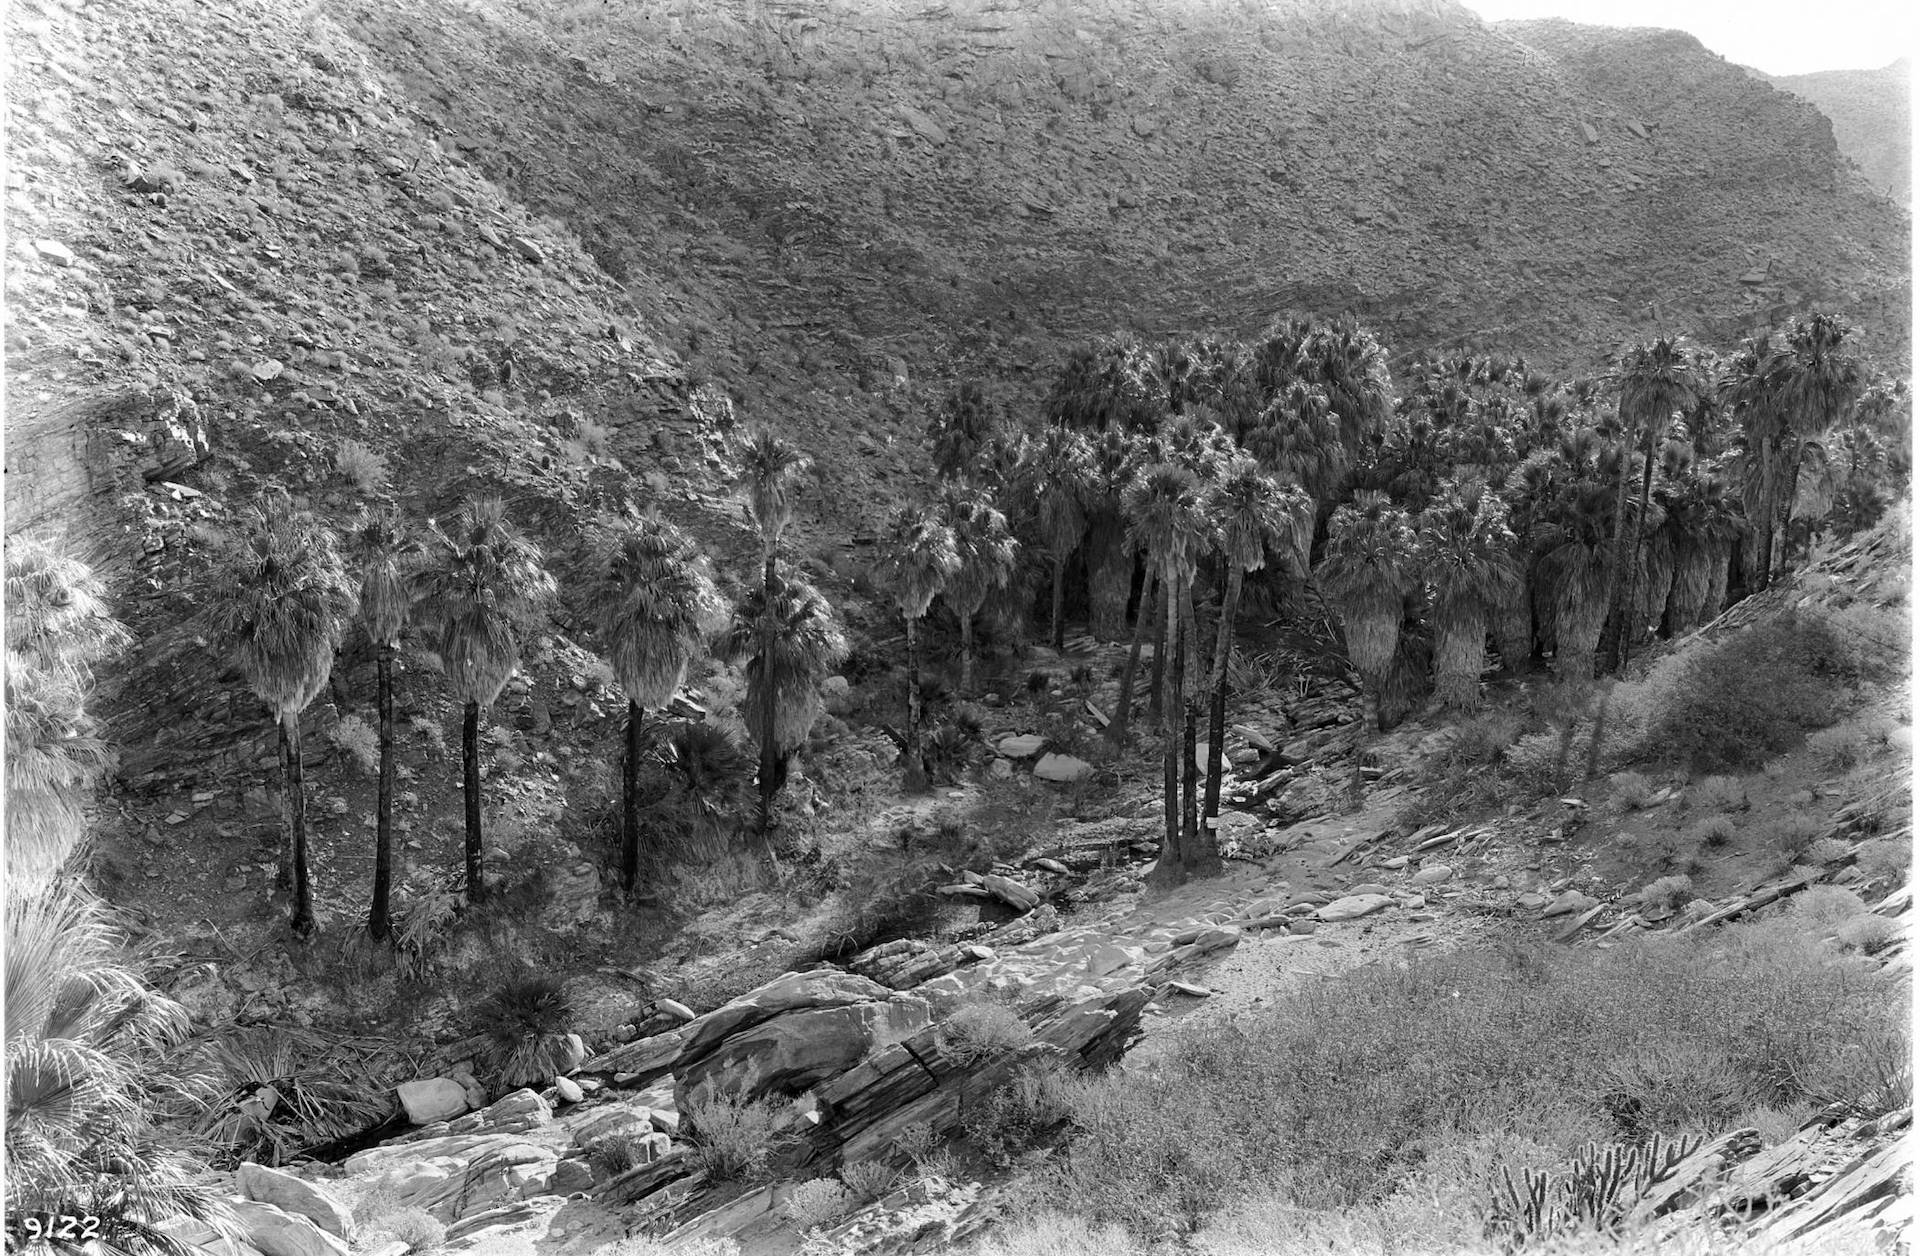 Native Washingtonia filifera palms growing in an oasis near Palm Springs, circa 1900. Courtesy of the Title Insurance and Trust / C.C. Pierce Photography Collection, USC Libraries.